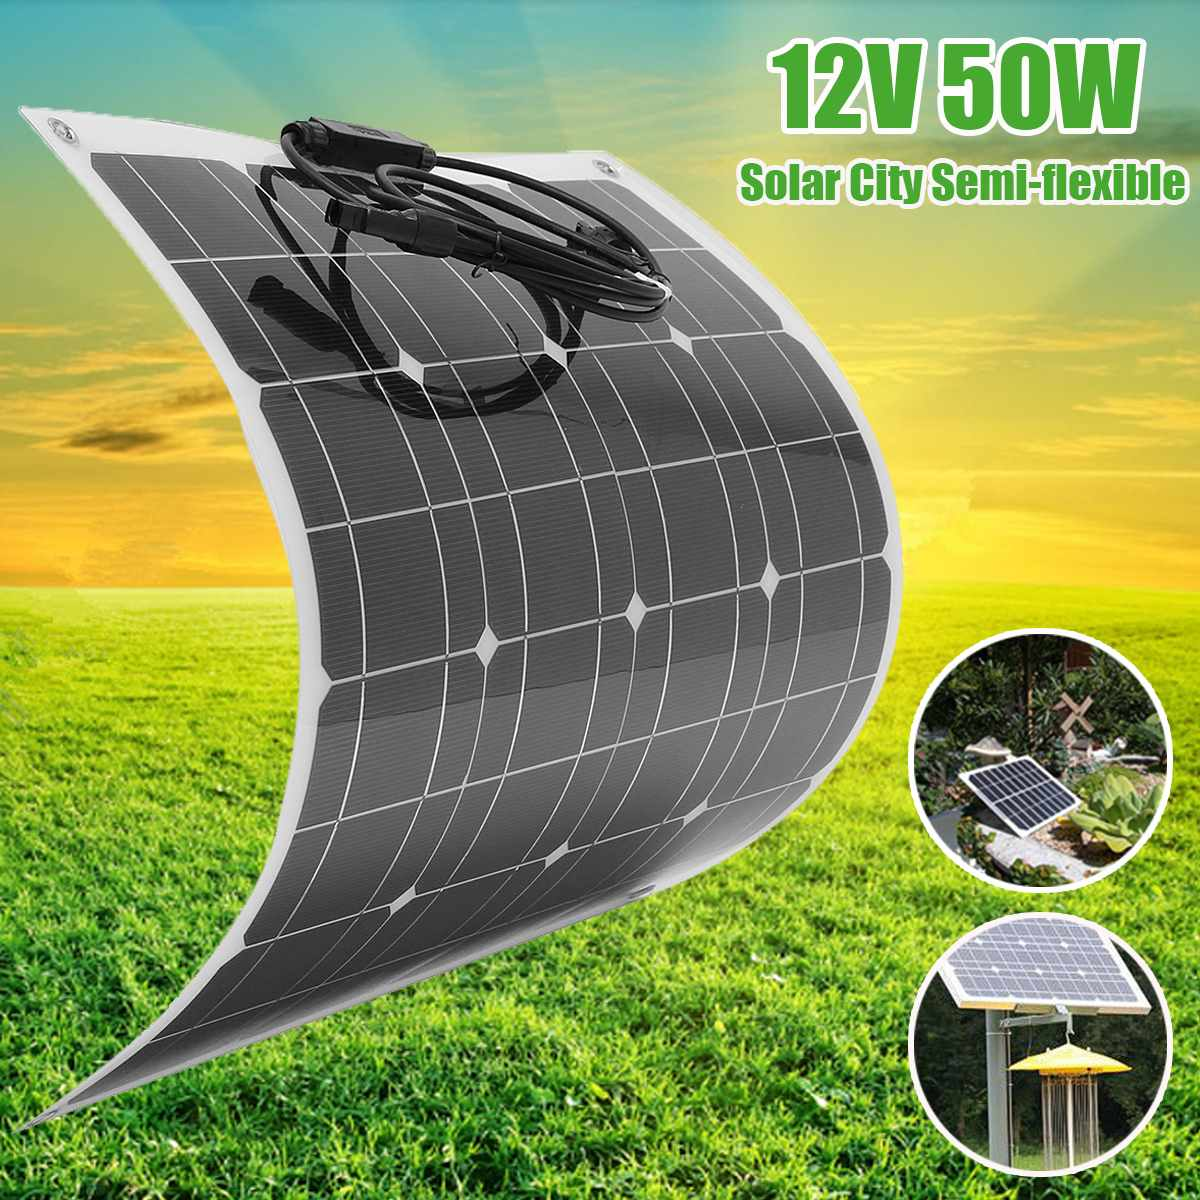 KINCO 60W/12V Semi-Flexible Solar Panel Monocrystalline Silicon Solar System Power Supply For Car Battery Charger sp 36 120w 12v semi flexible monocrystalline solar panel waterproof high conversion efficiency for rv boat car 1 5m cable